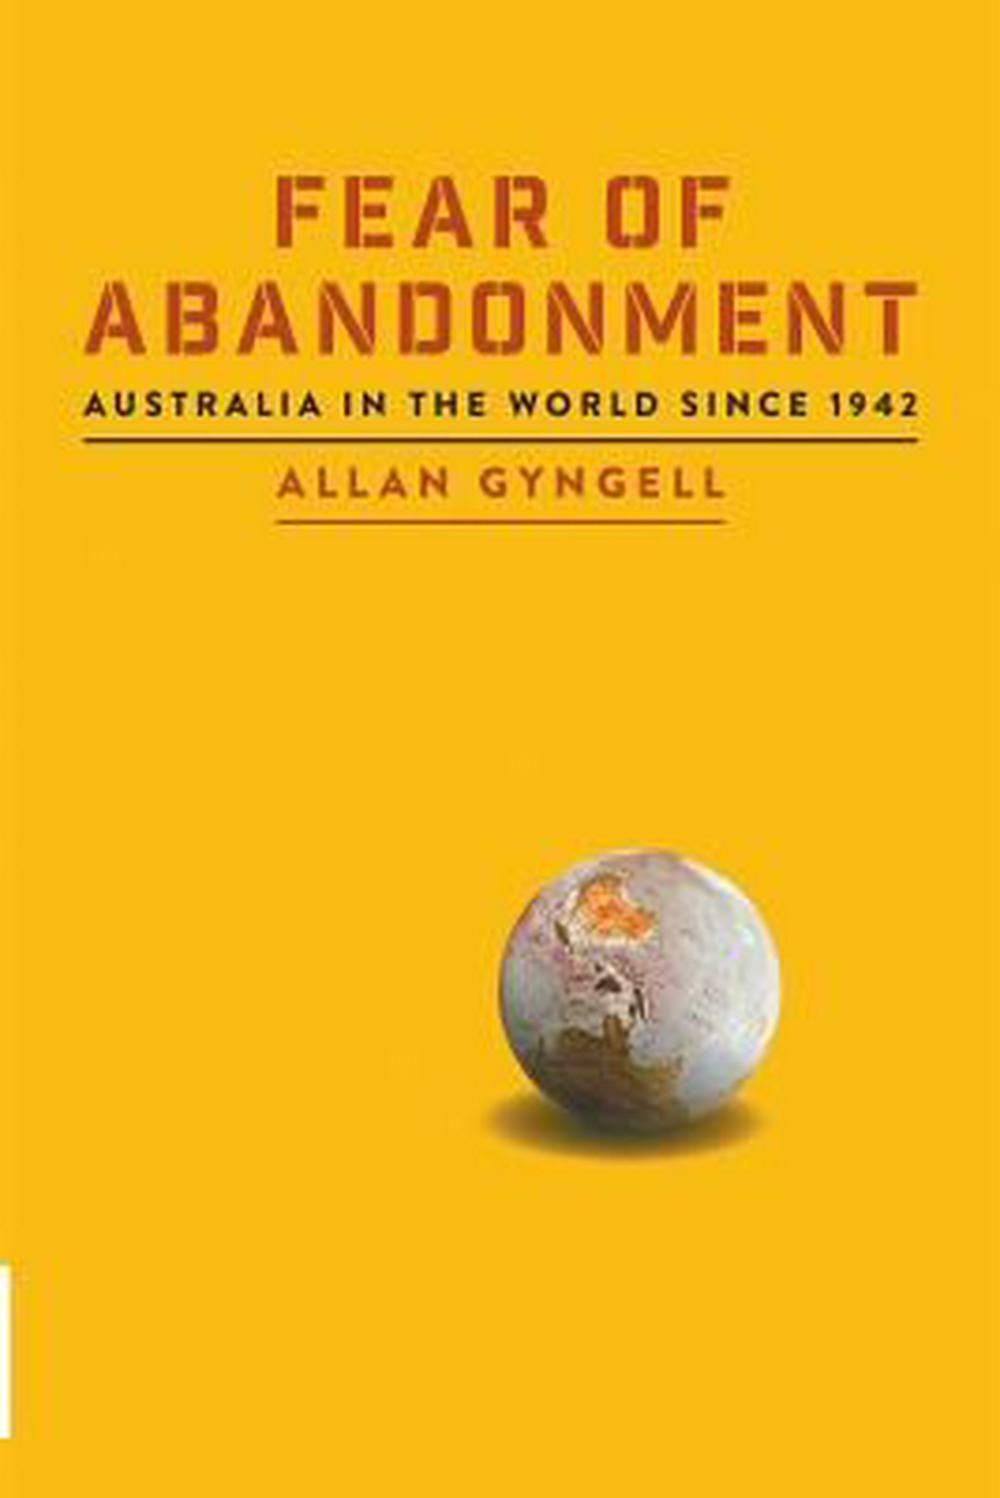 Fear of Abandonment by Allan Gyngell, ISBN: 9781863959186